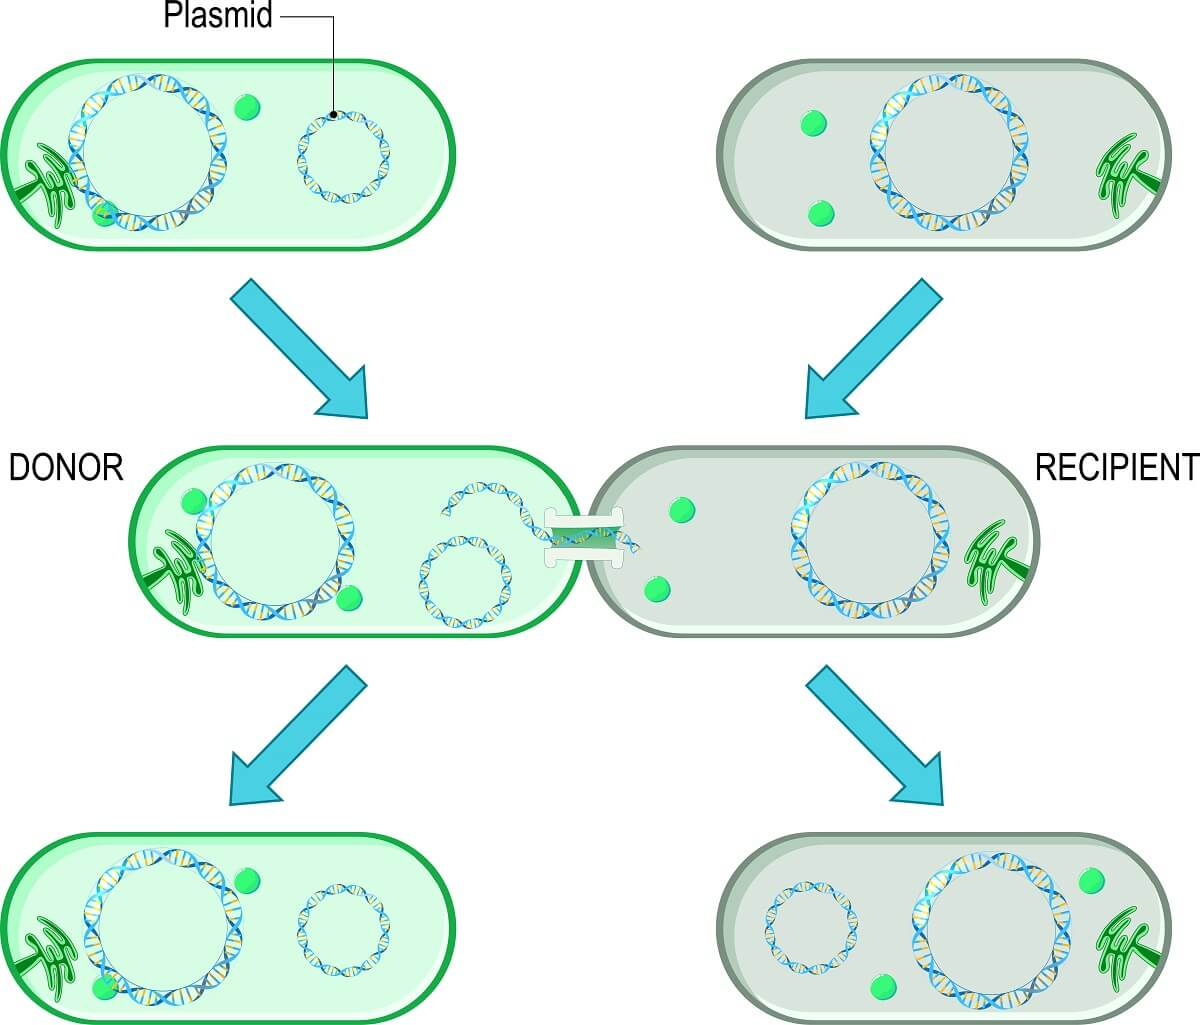 During bacterial conjugation, one bacterium can pass plasmids to another bacterium.